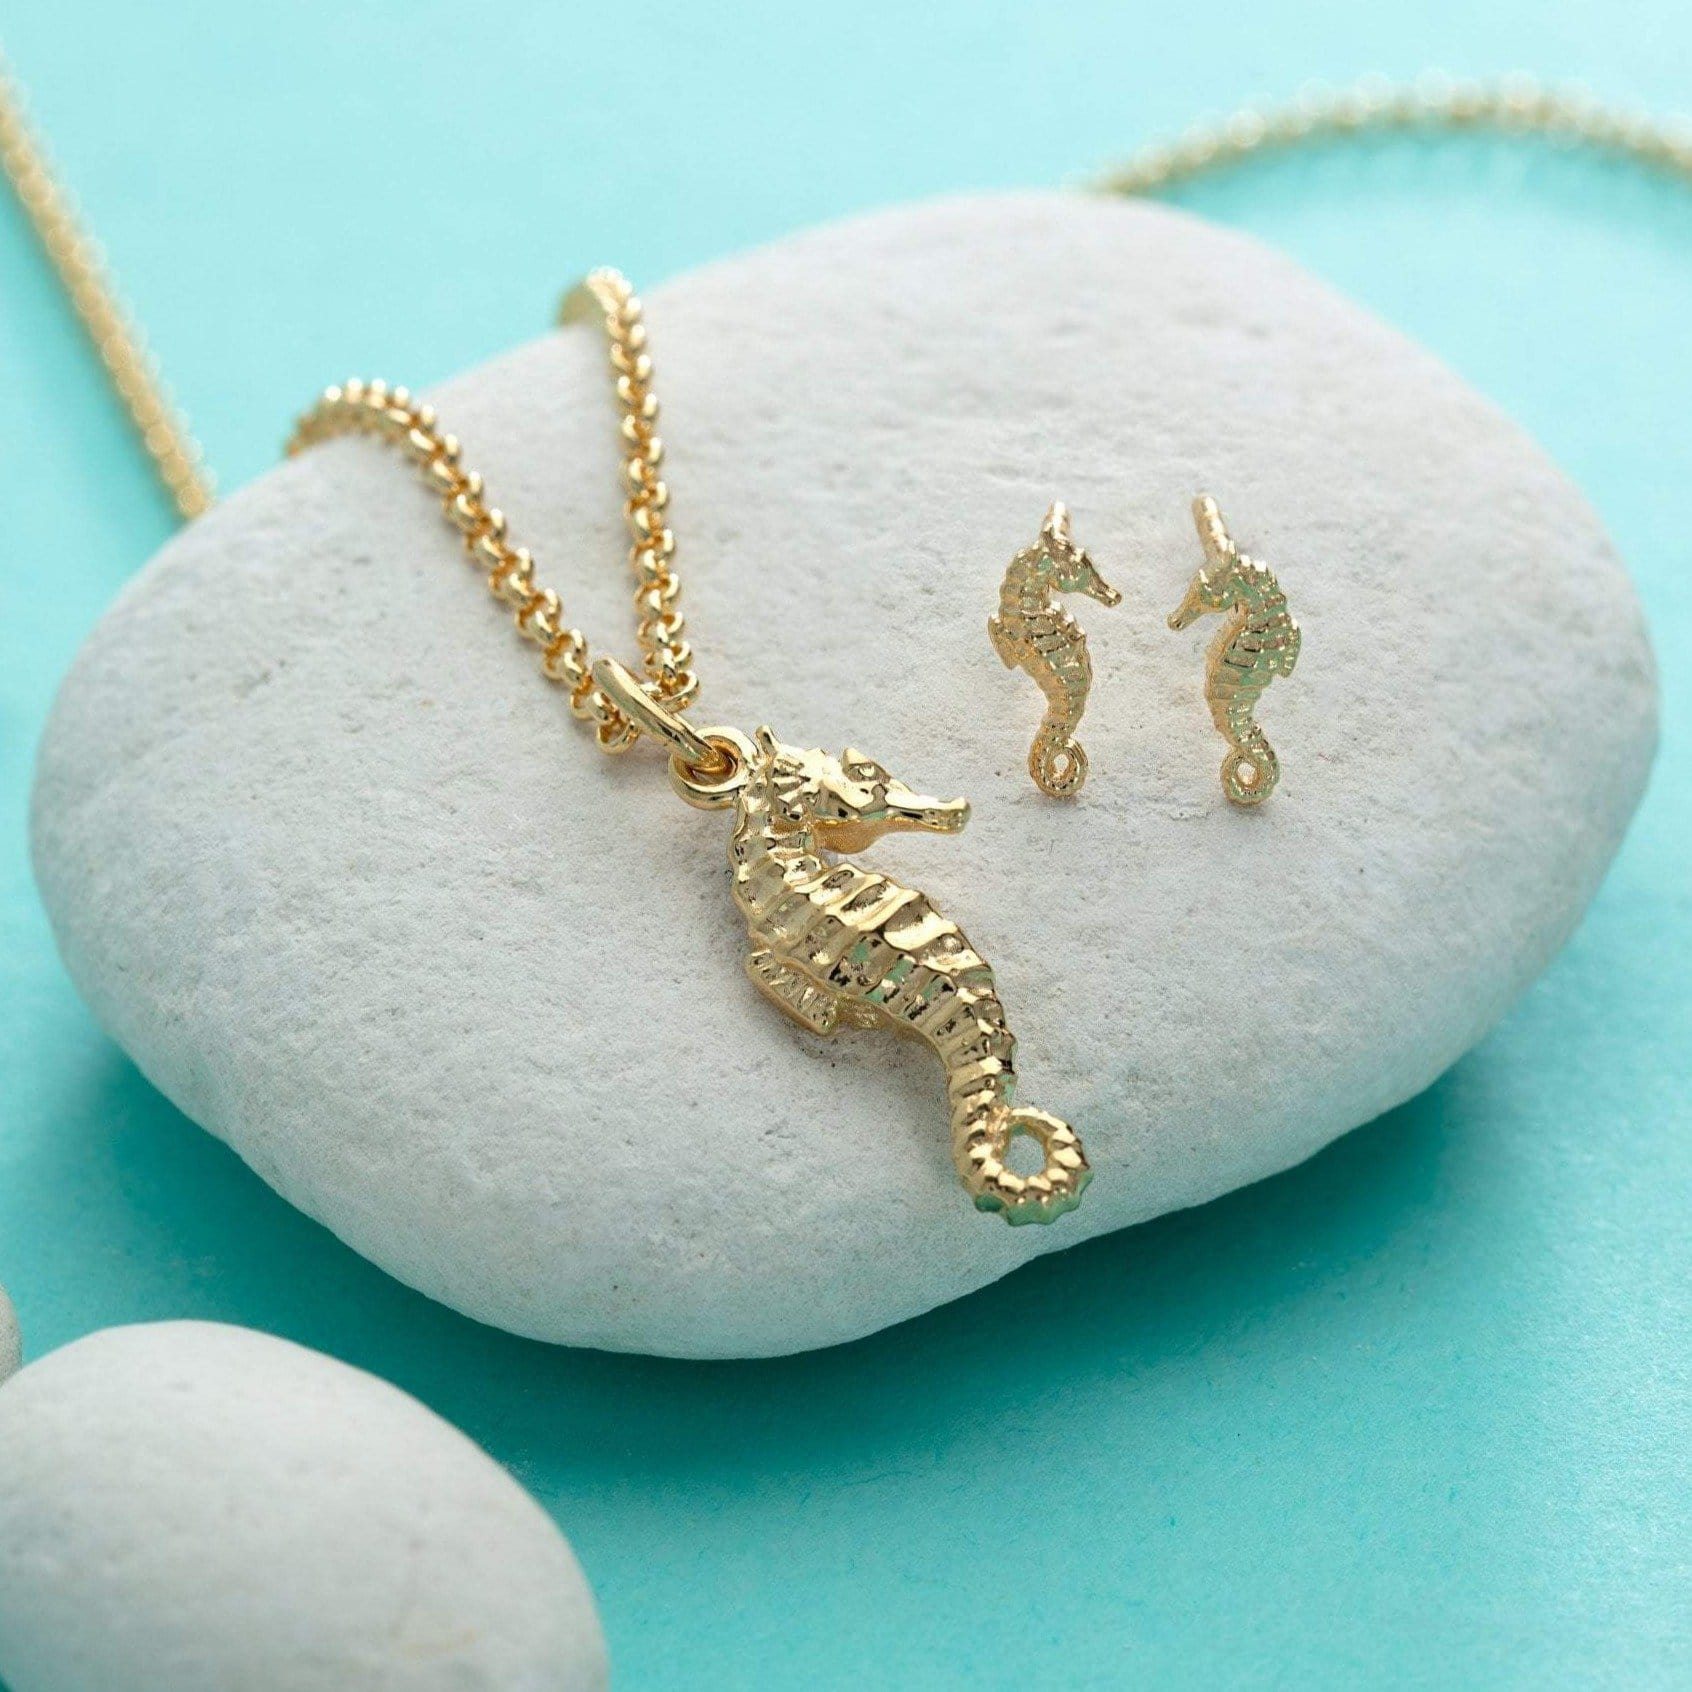 c95c2b149 Gold Plated Seahorse Jewellery Set With Stud Earrings - Lily Charmed